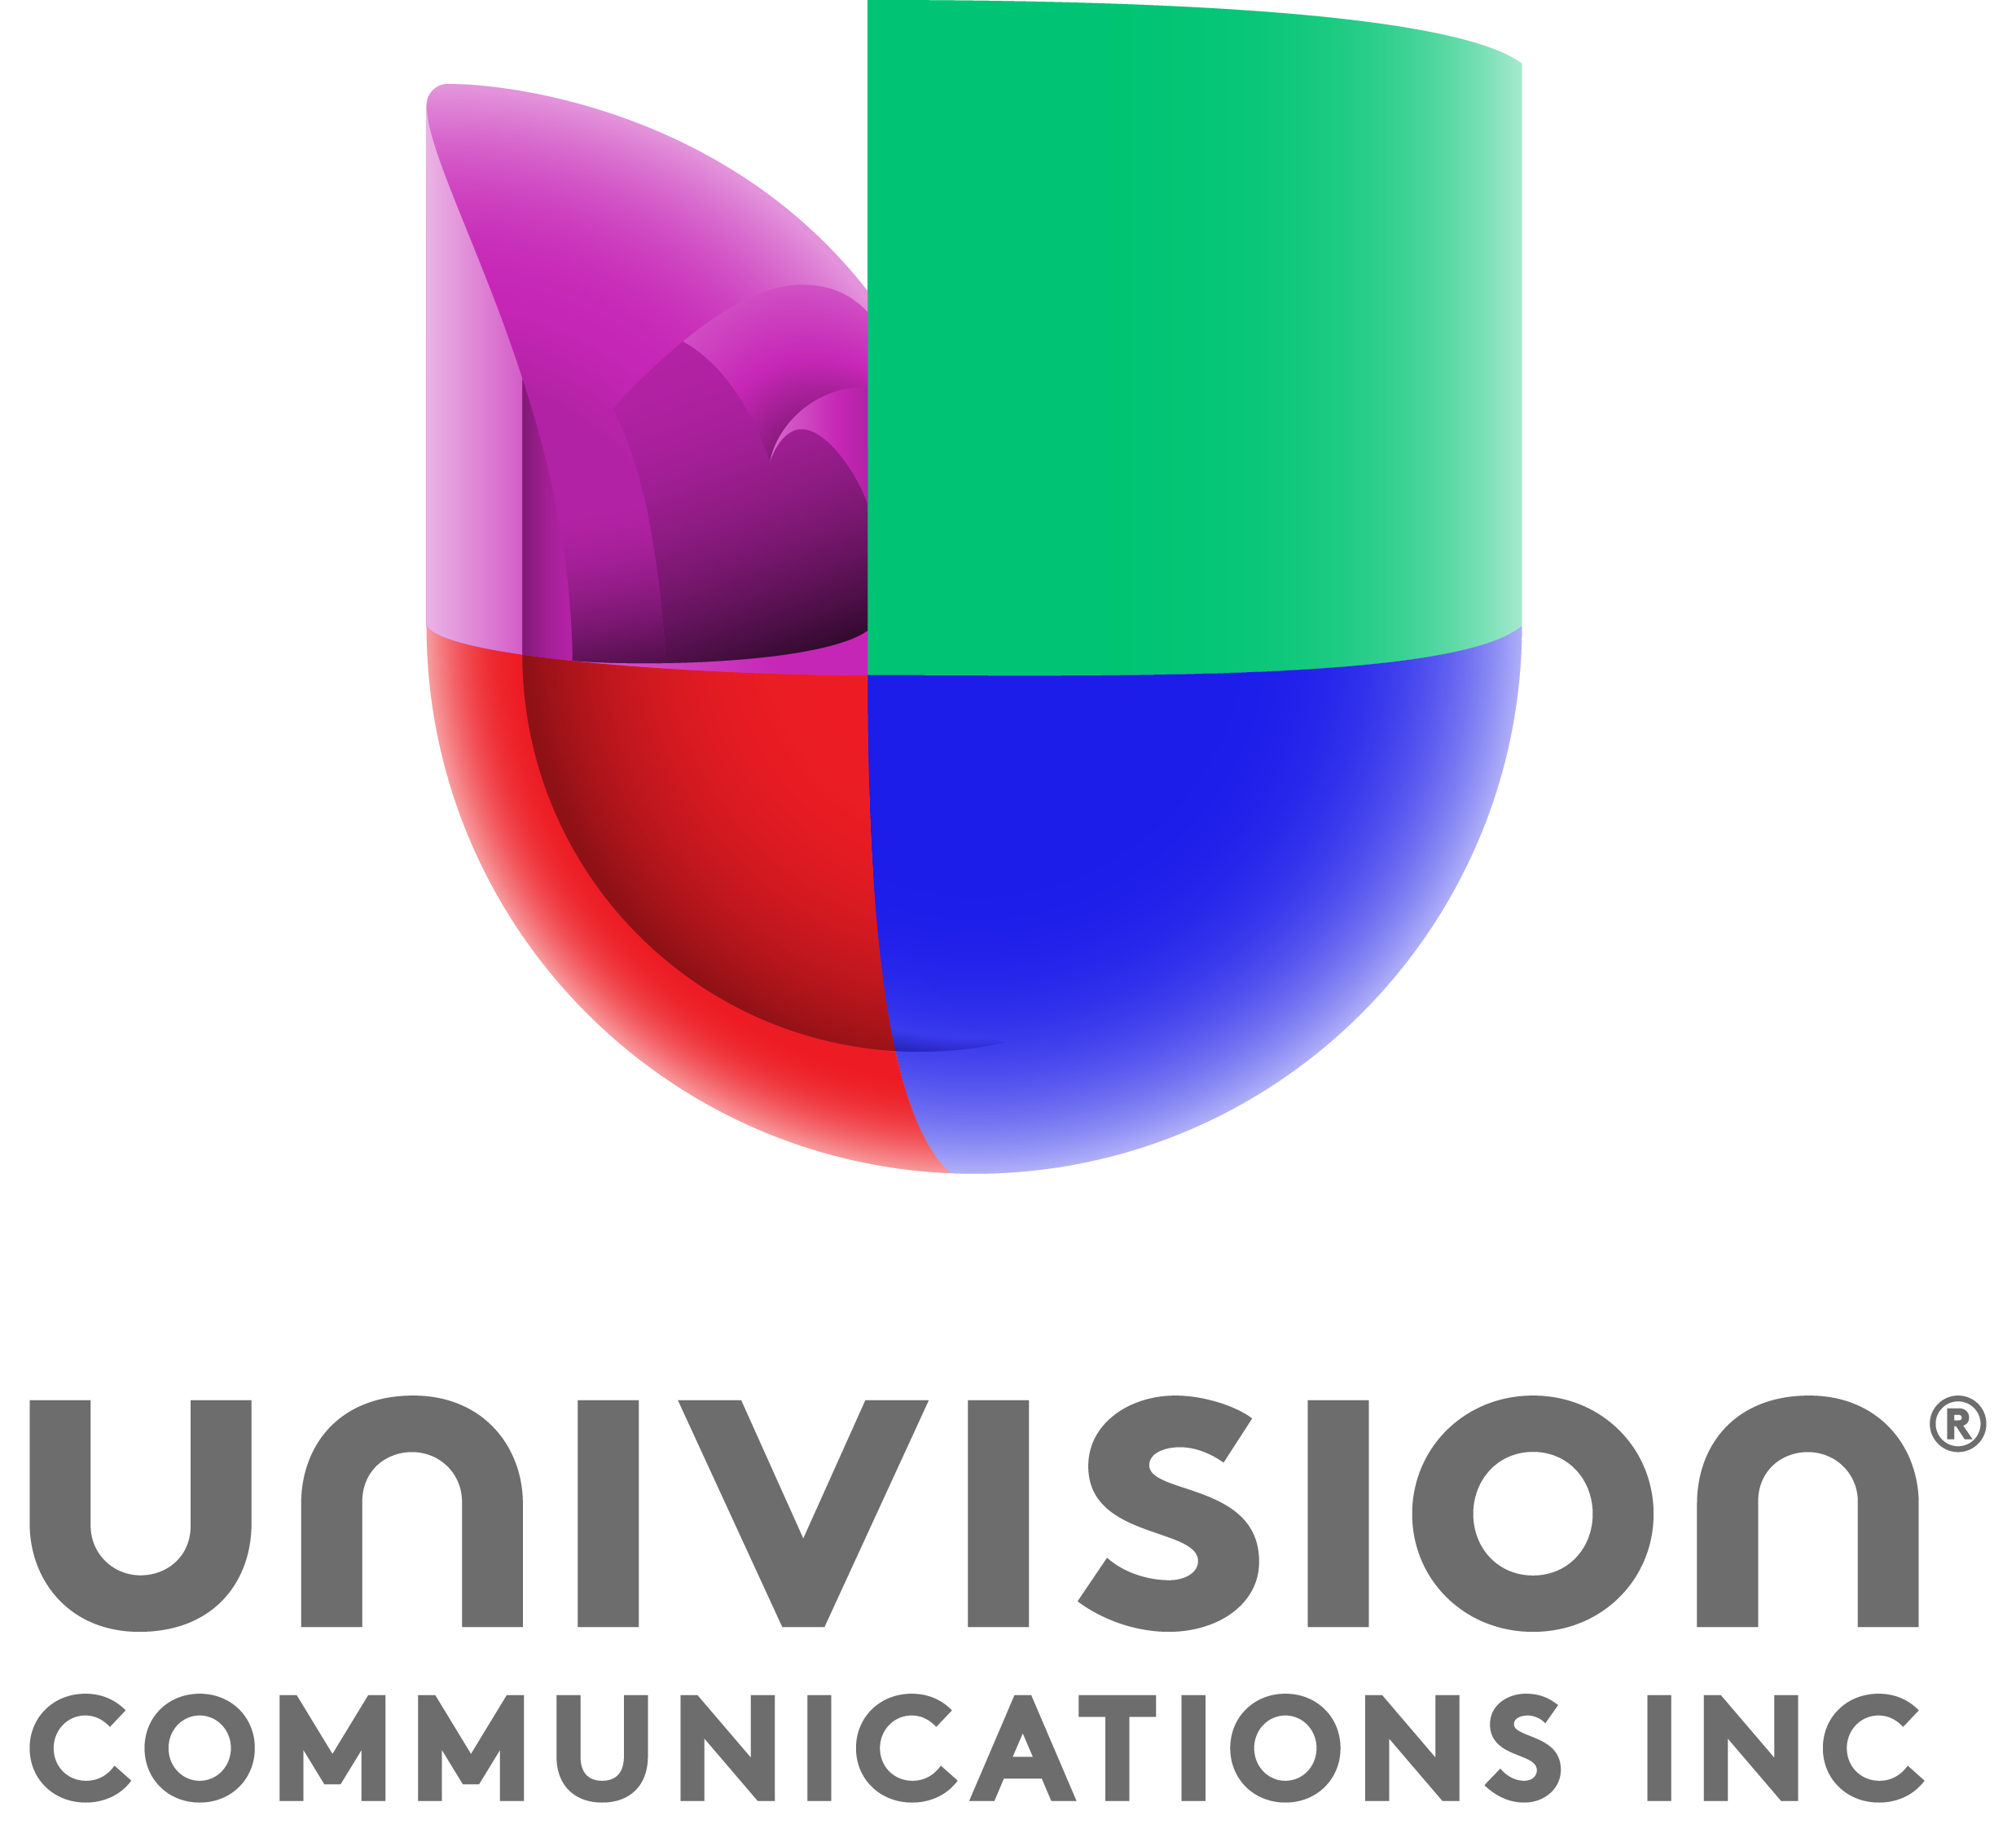 univision_logo.png